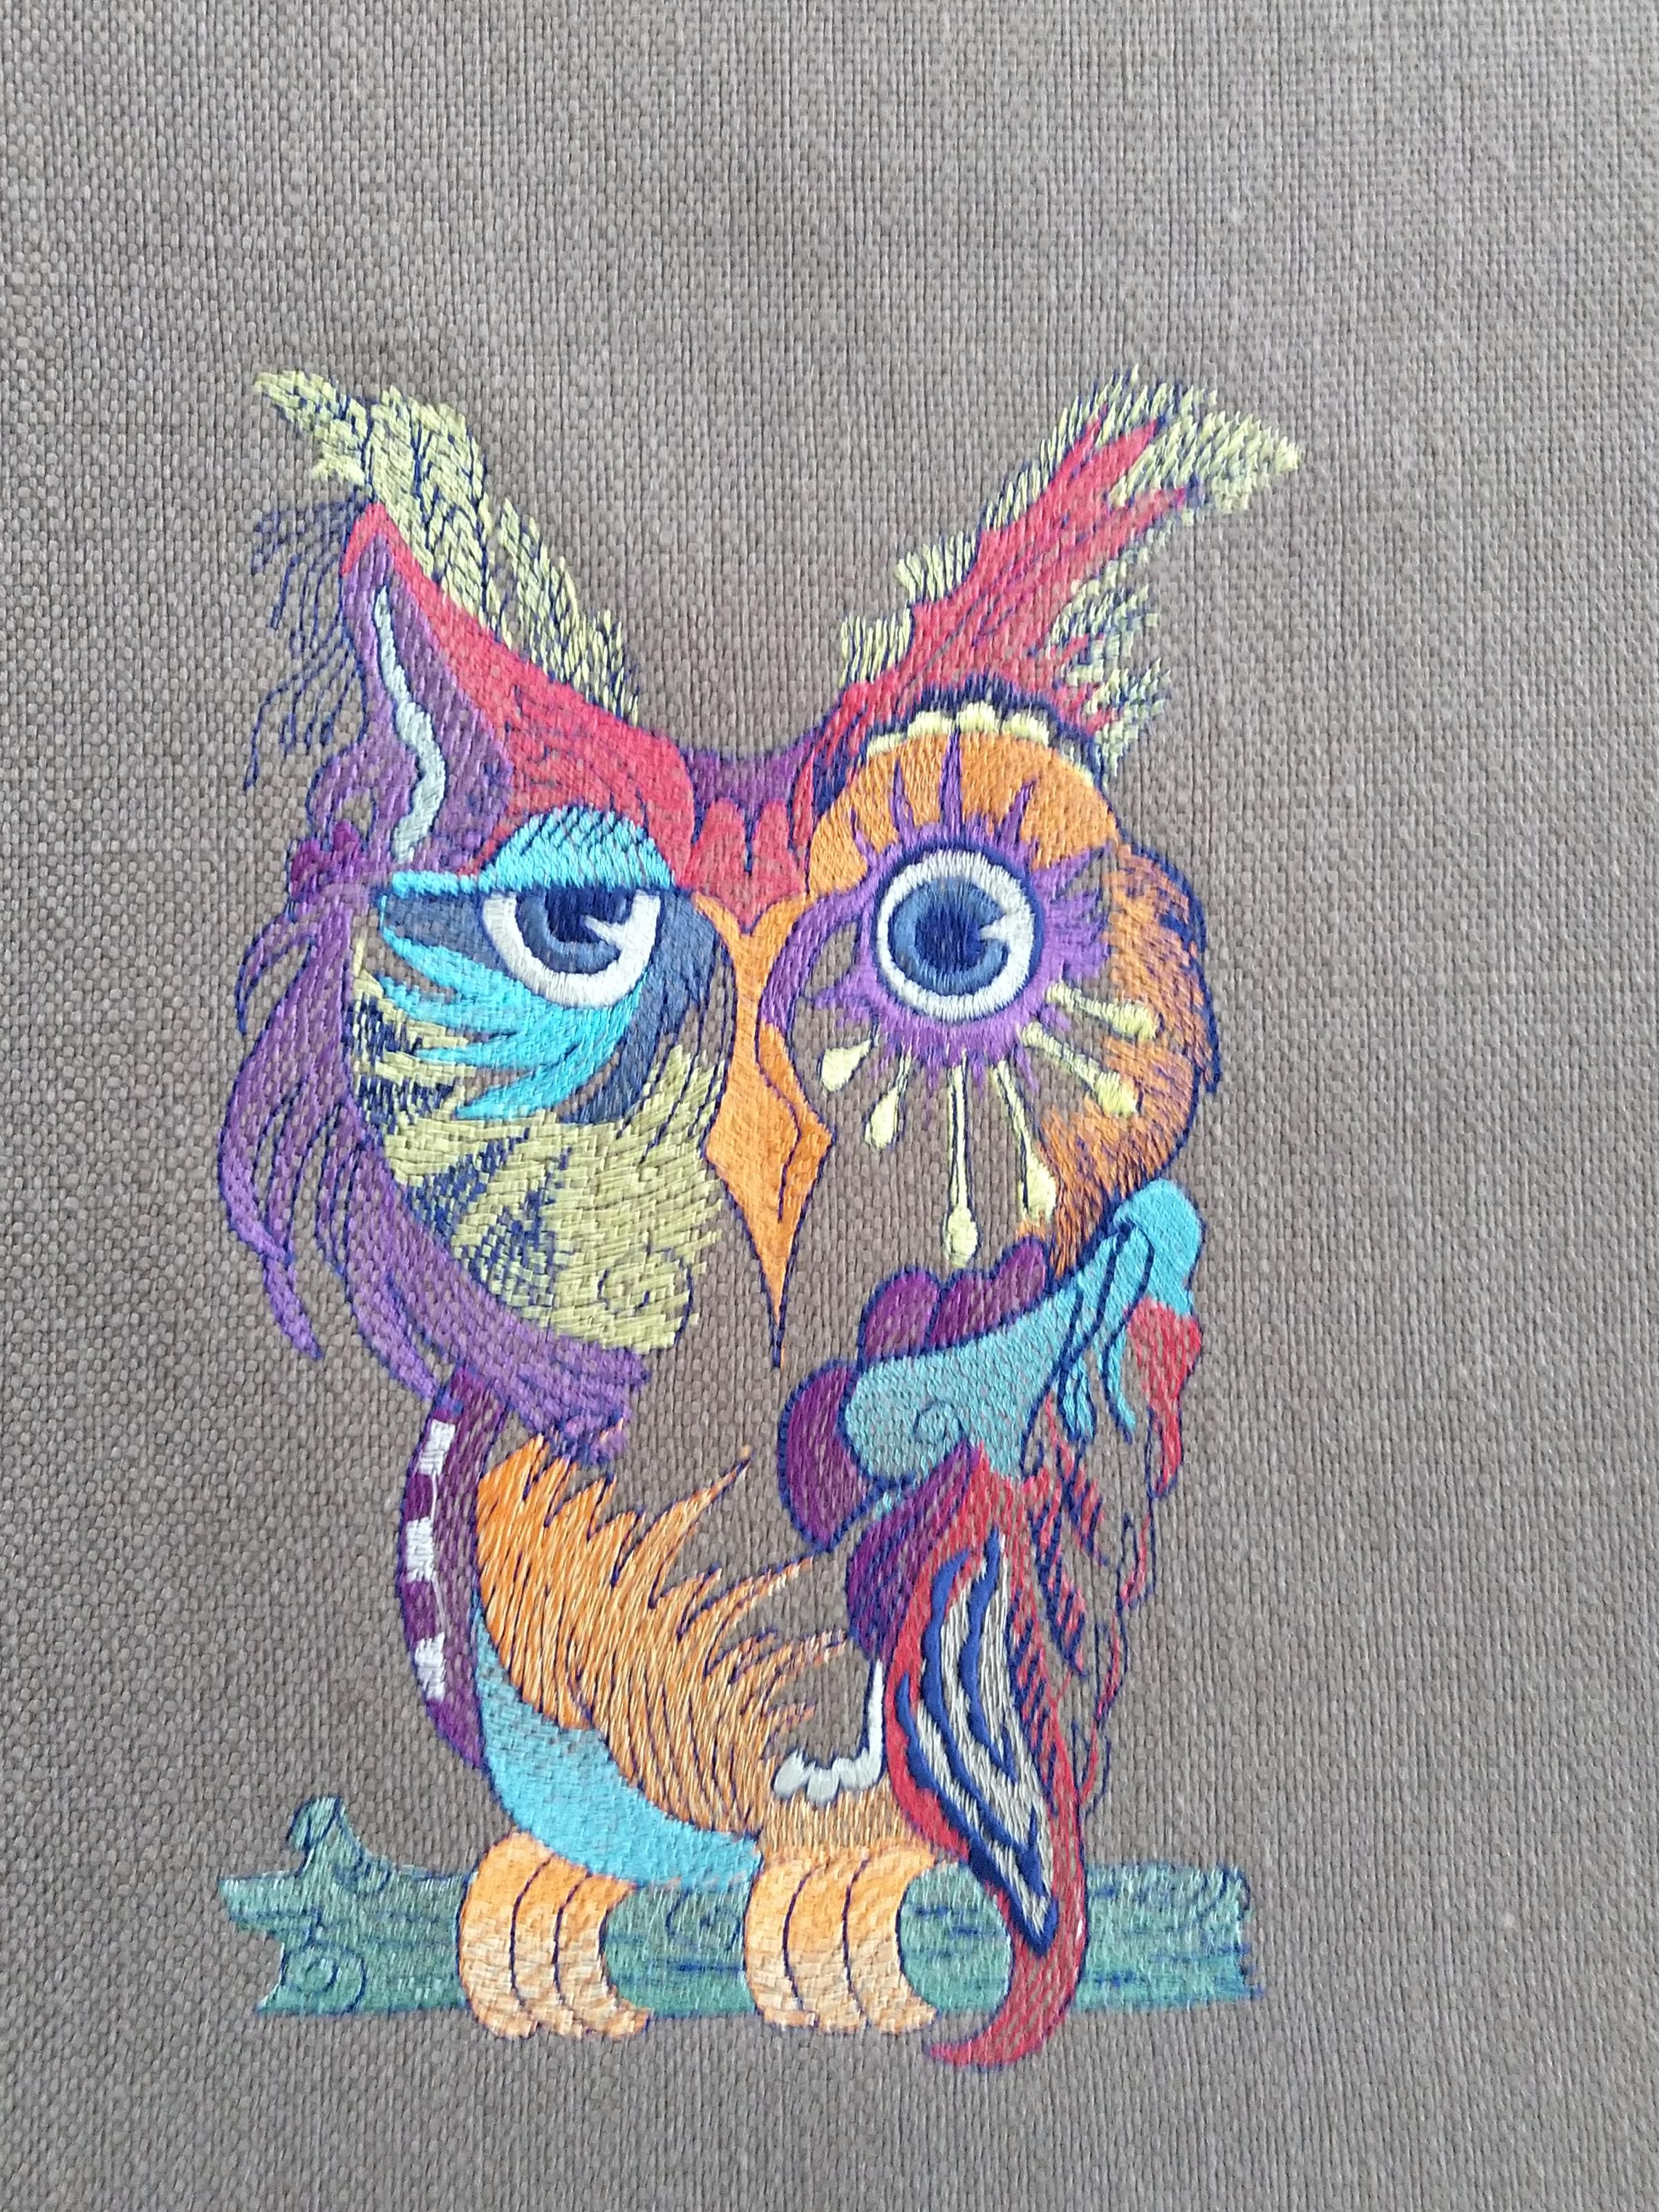 Owl  colored embroidery design